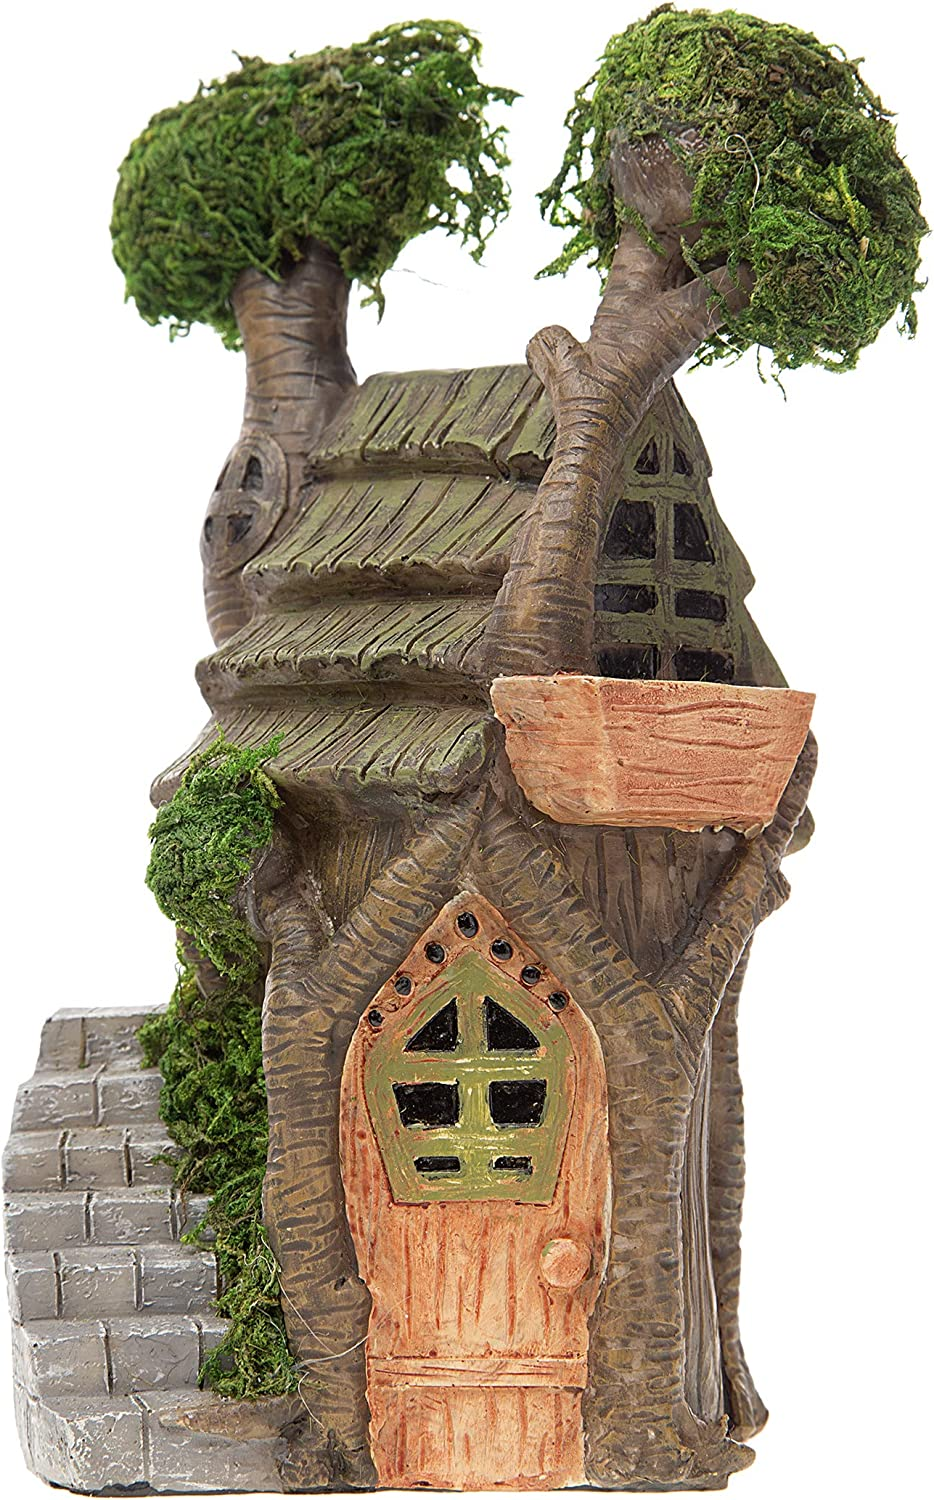 Darice Resin House: Double Treehouse with Moss Accents & Stairway Fairy Garden